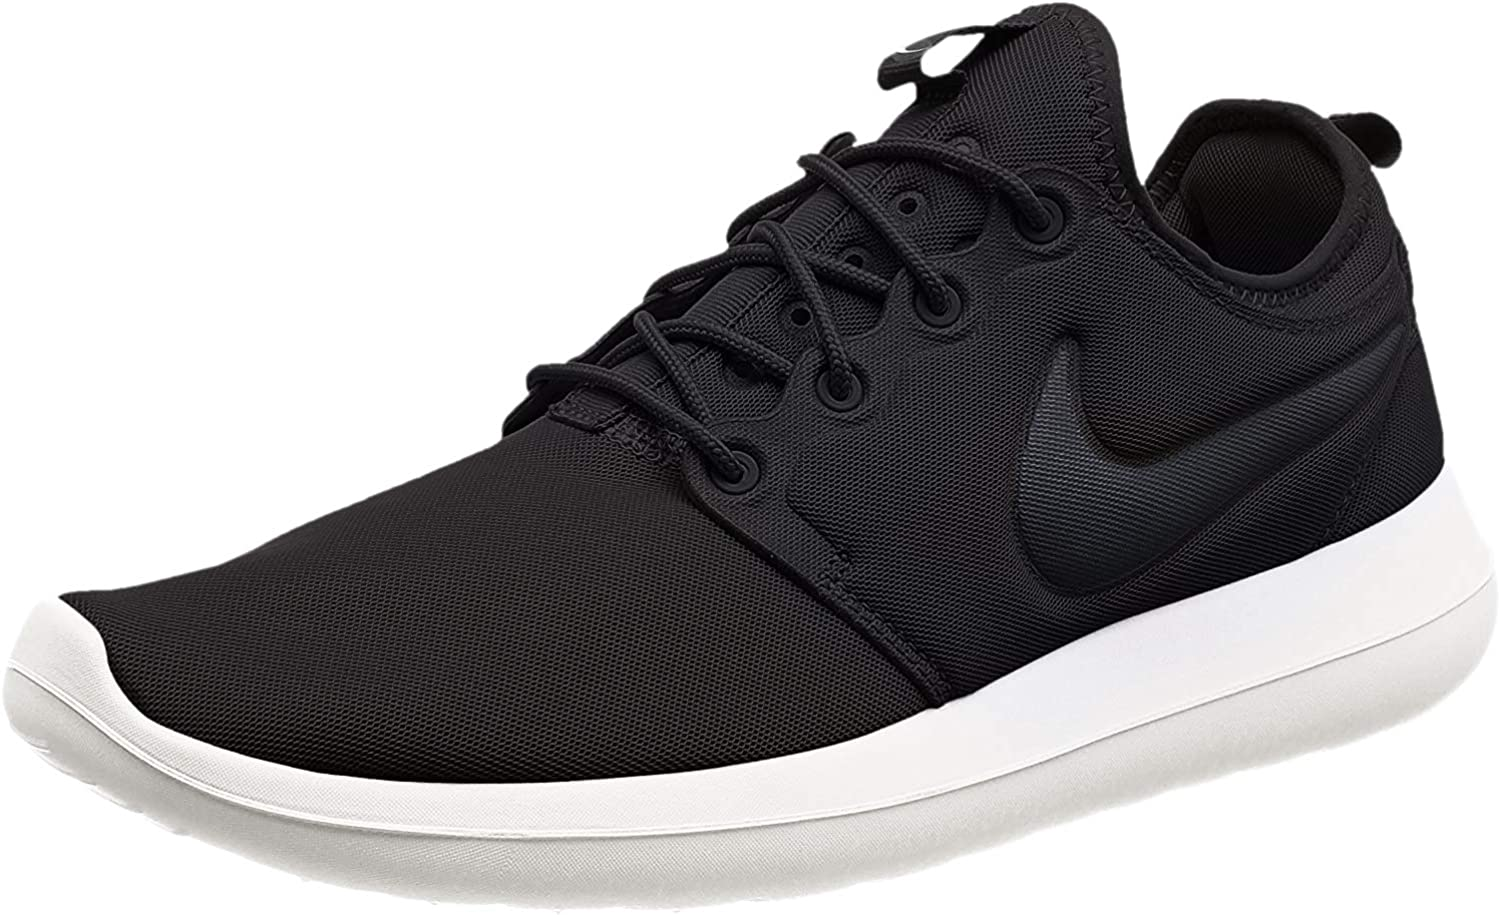 Nike Mens Roshe Two 2 Lifestyle Running Sneakers Black Sail Volt Anthracite 9